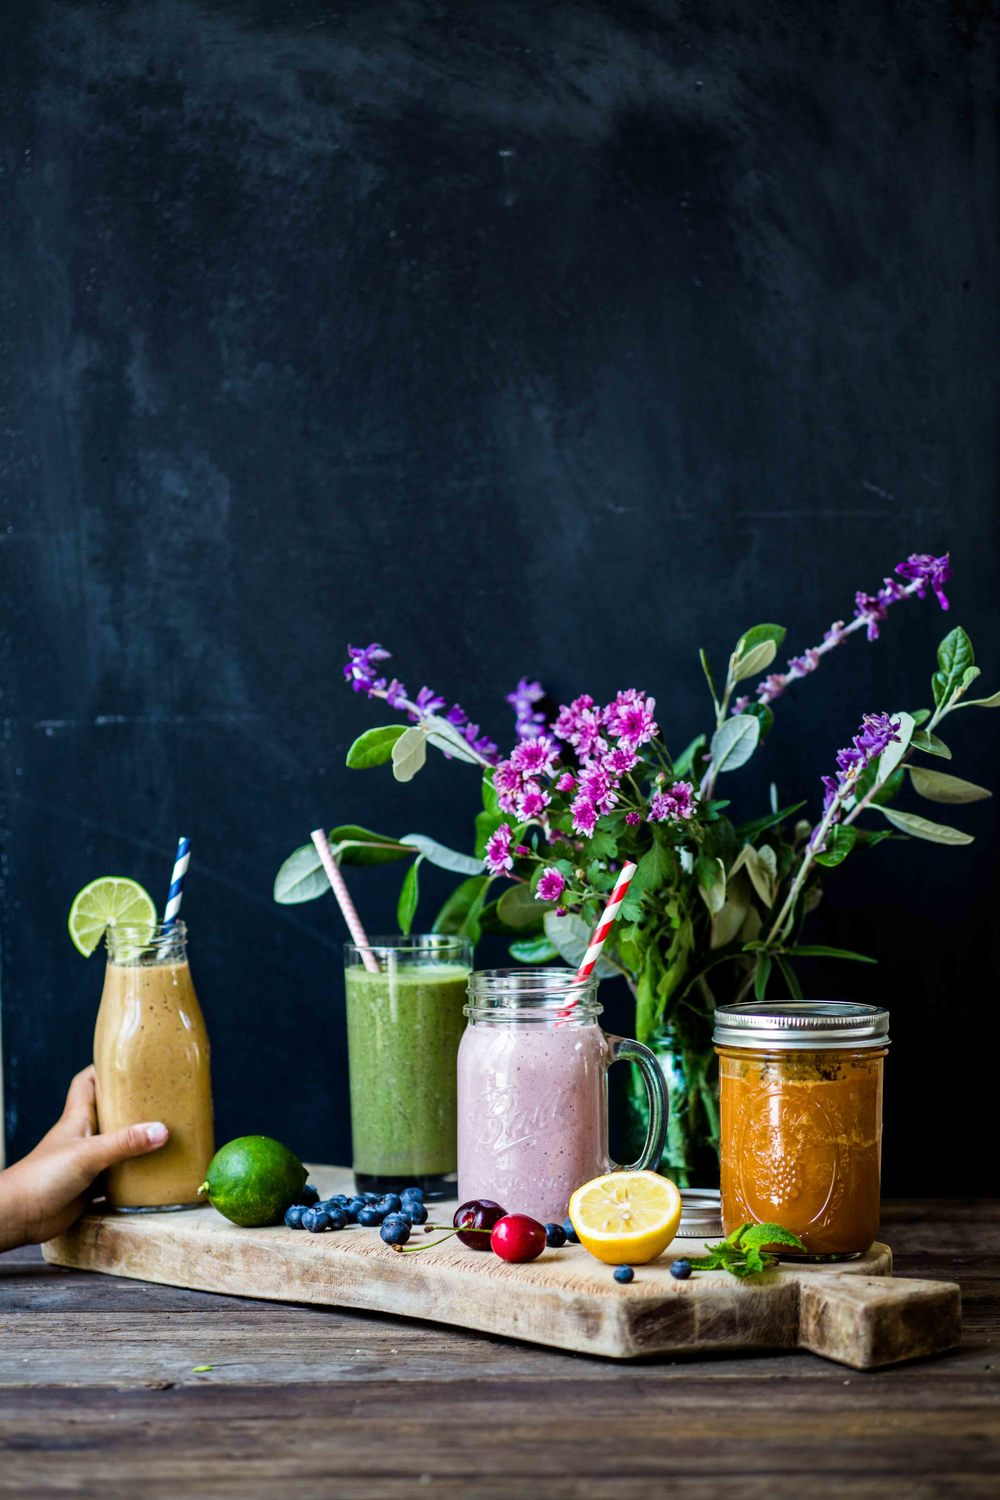 Smoothies from Green Blender - www.madelinelu.com